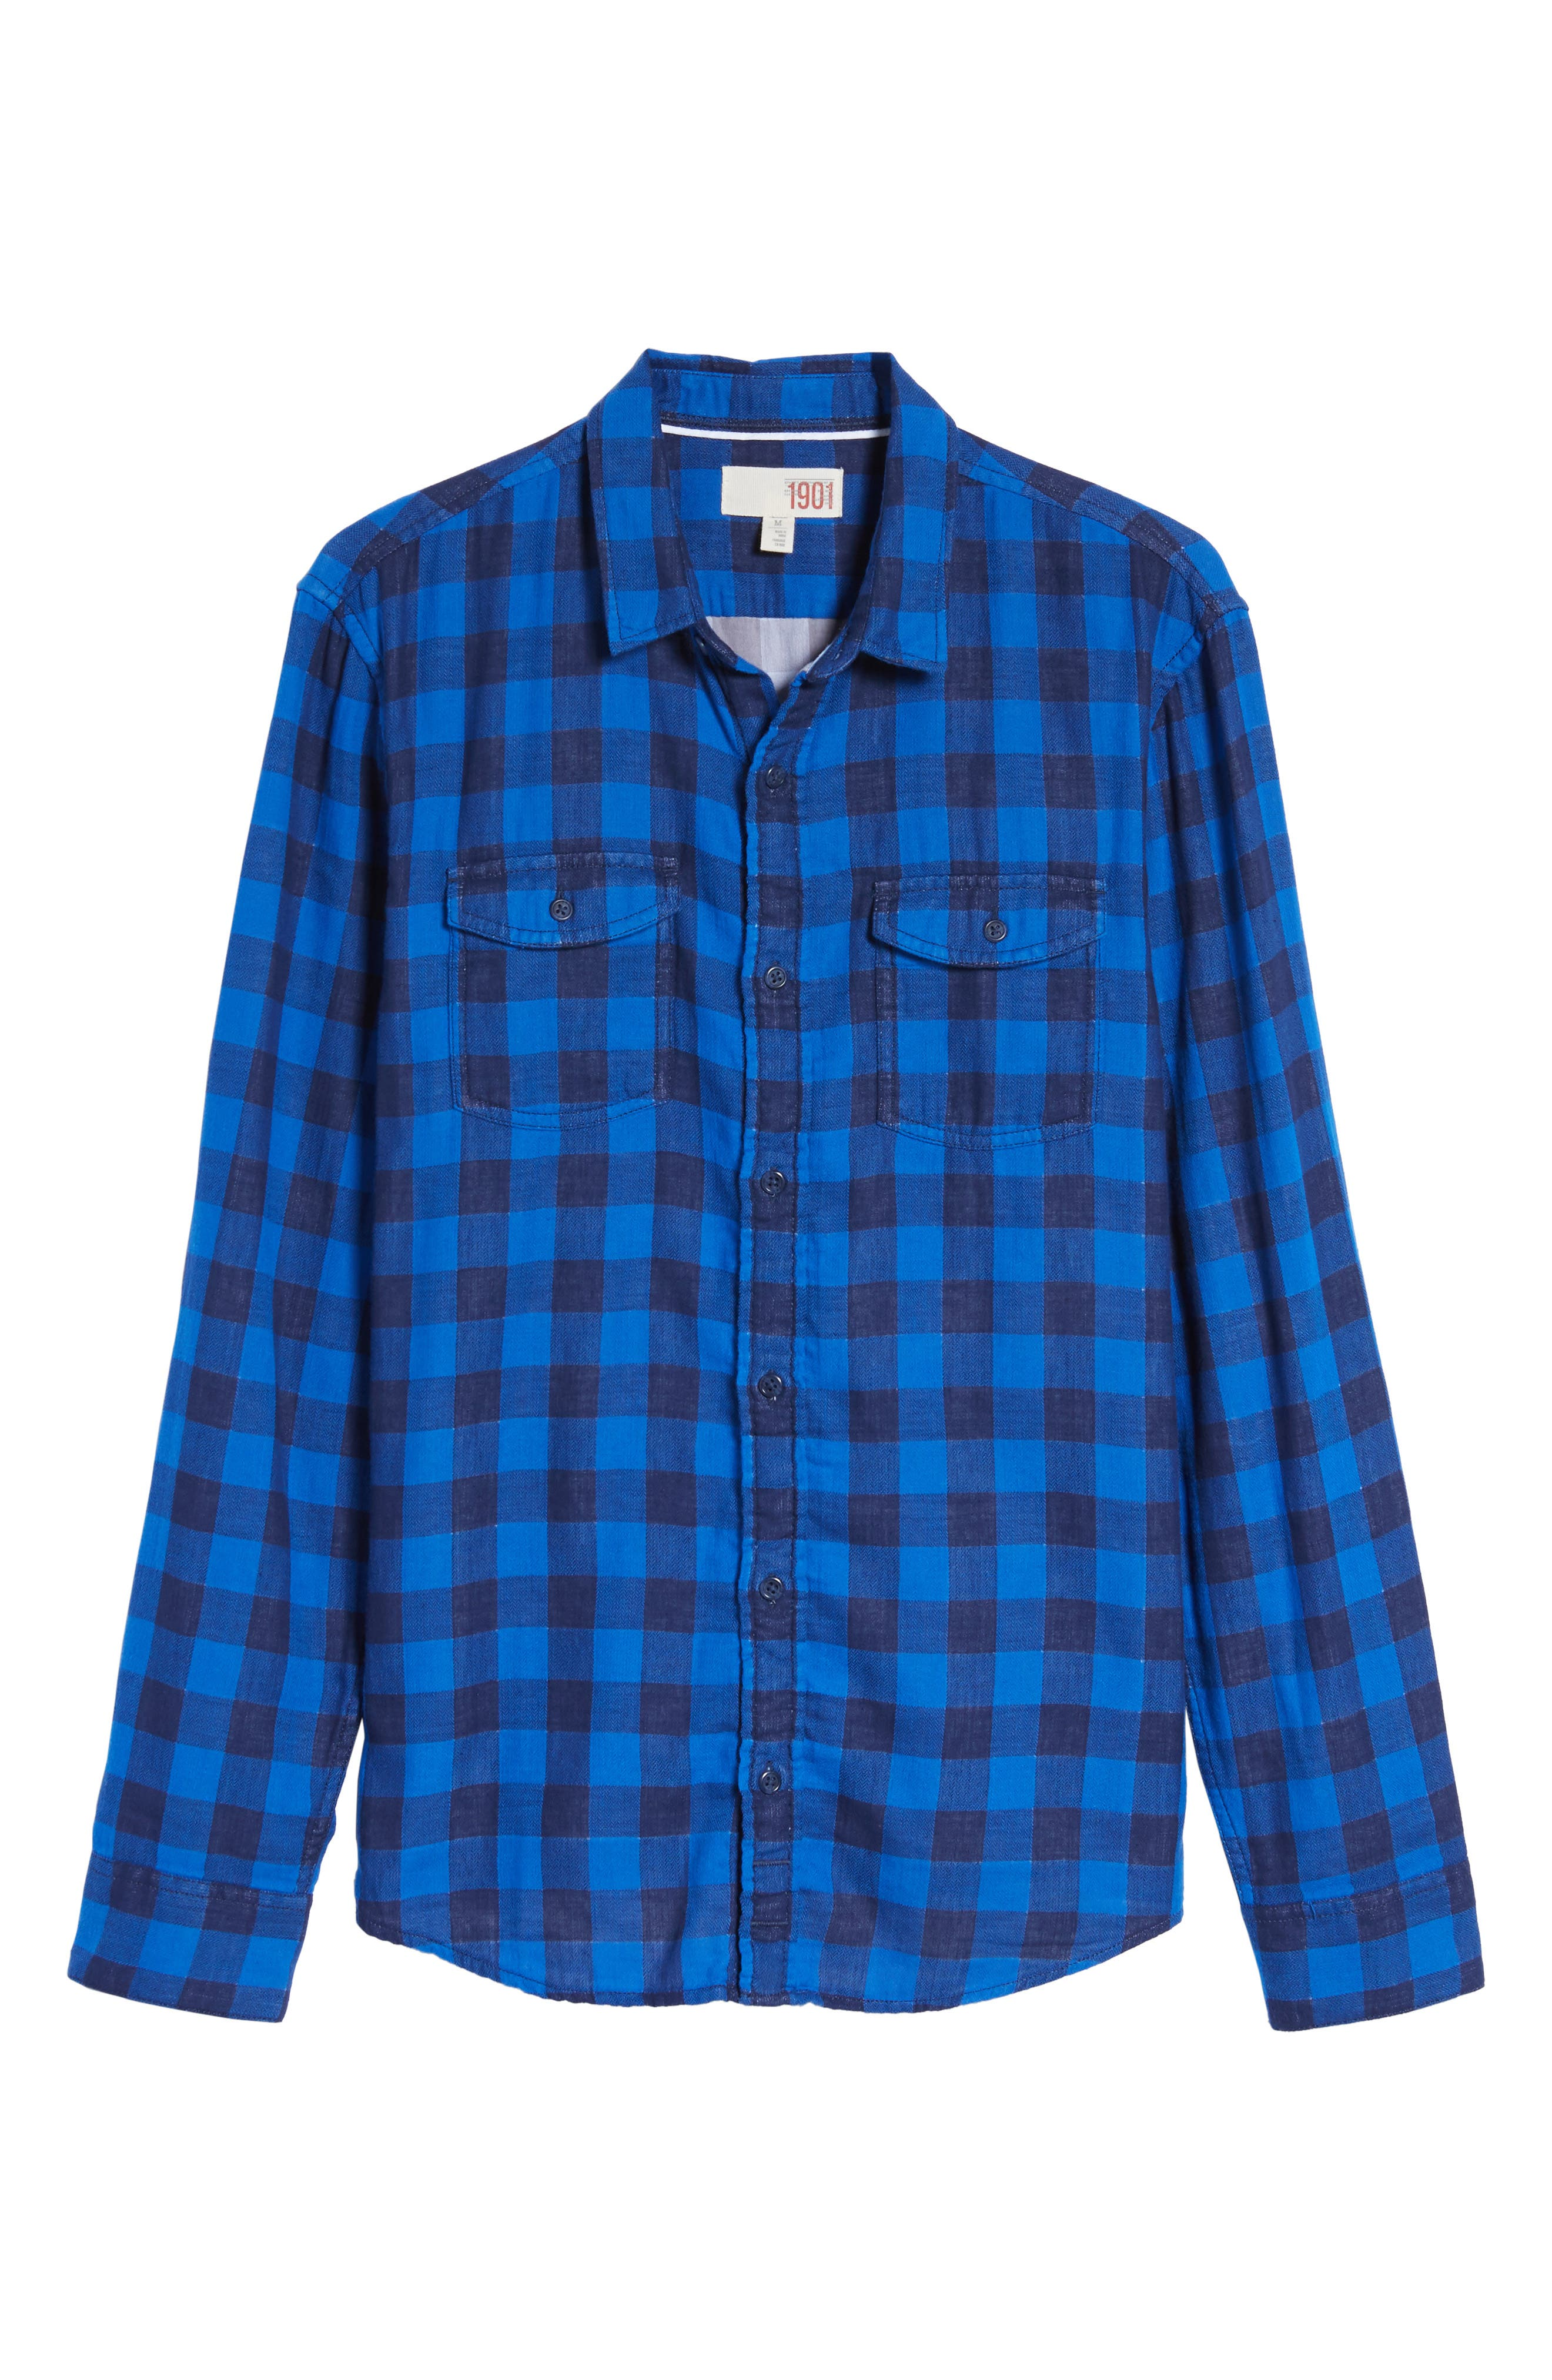 Duofold Check Sport Shirt,                             Alternate thumbnail 6, color,                             420